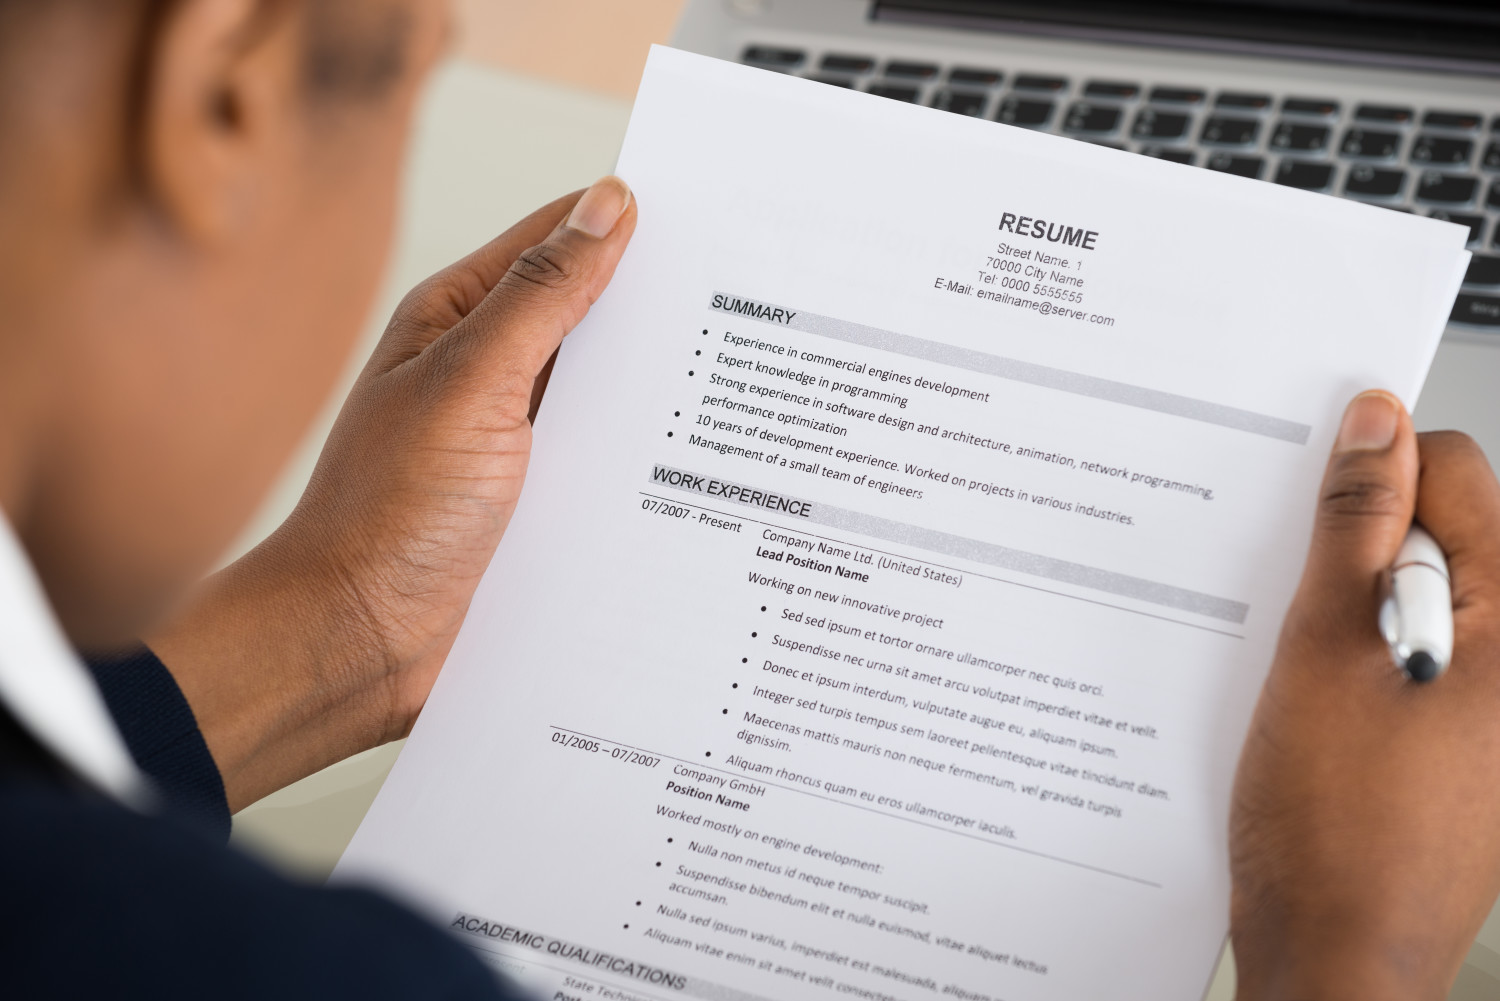 7 resume tips for 2016 10 tips to consider when editing your resume - Resume Review